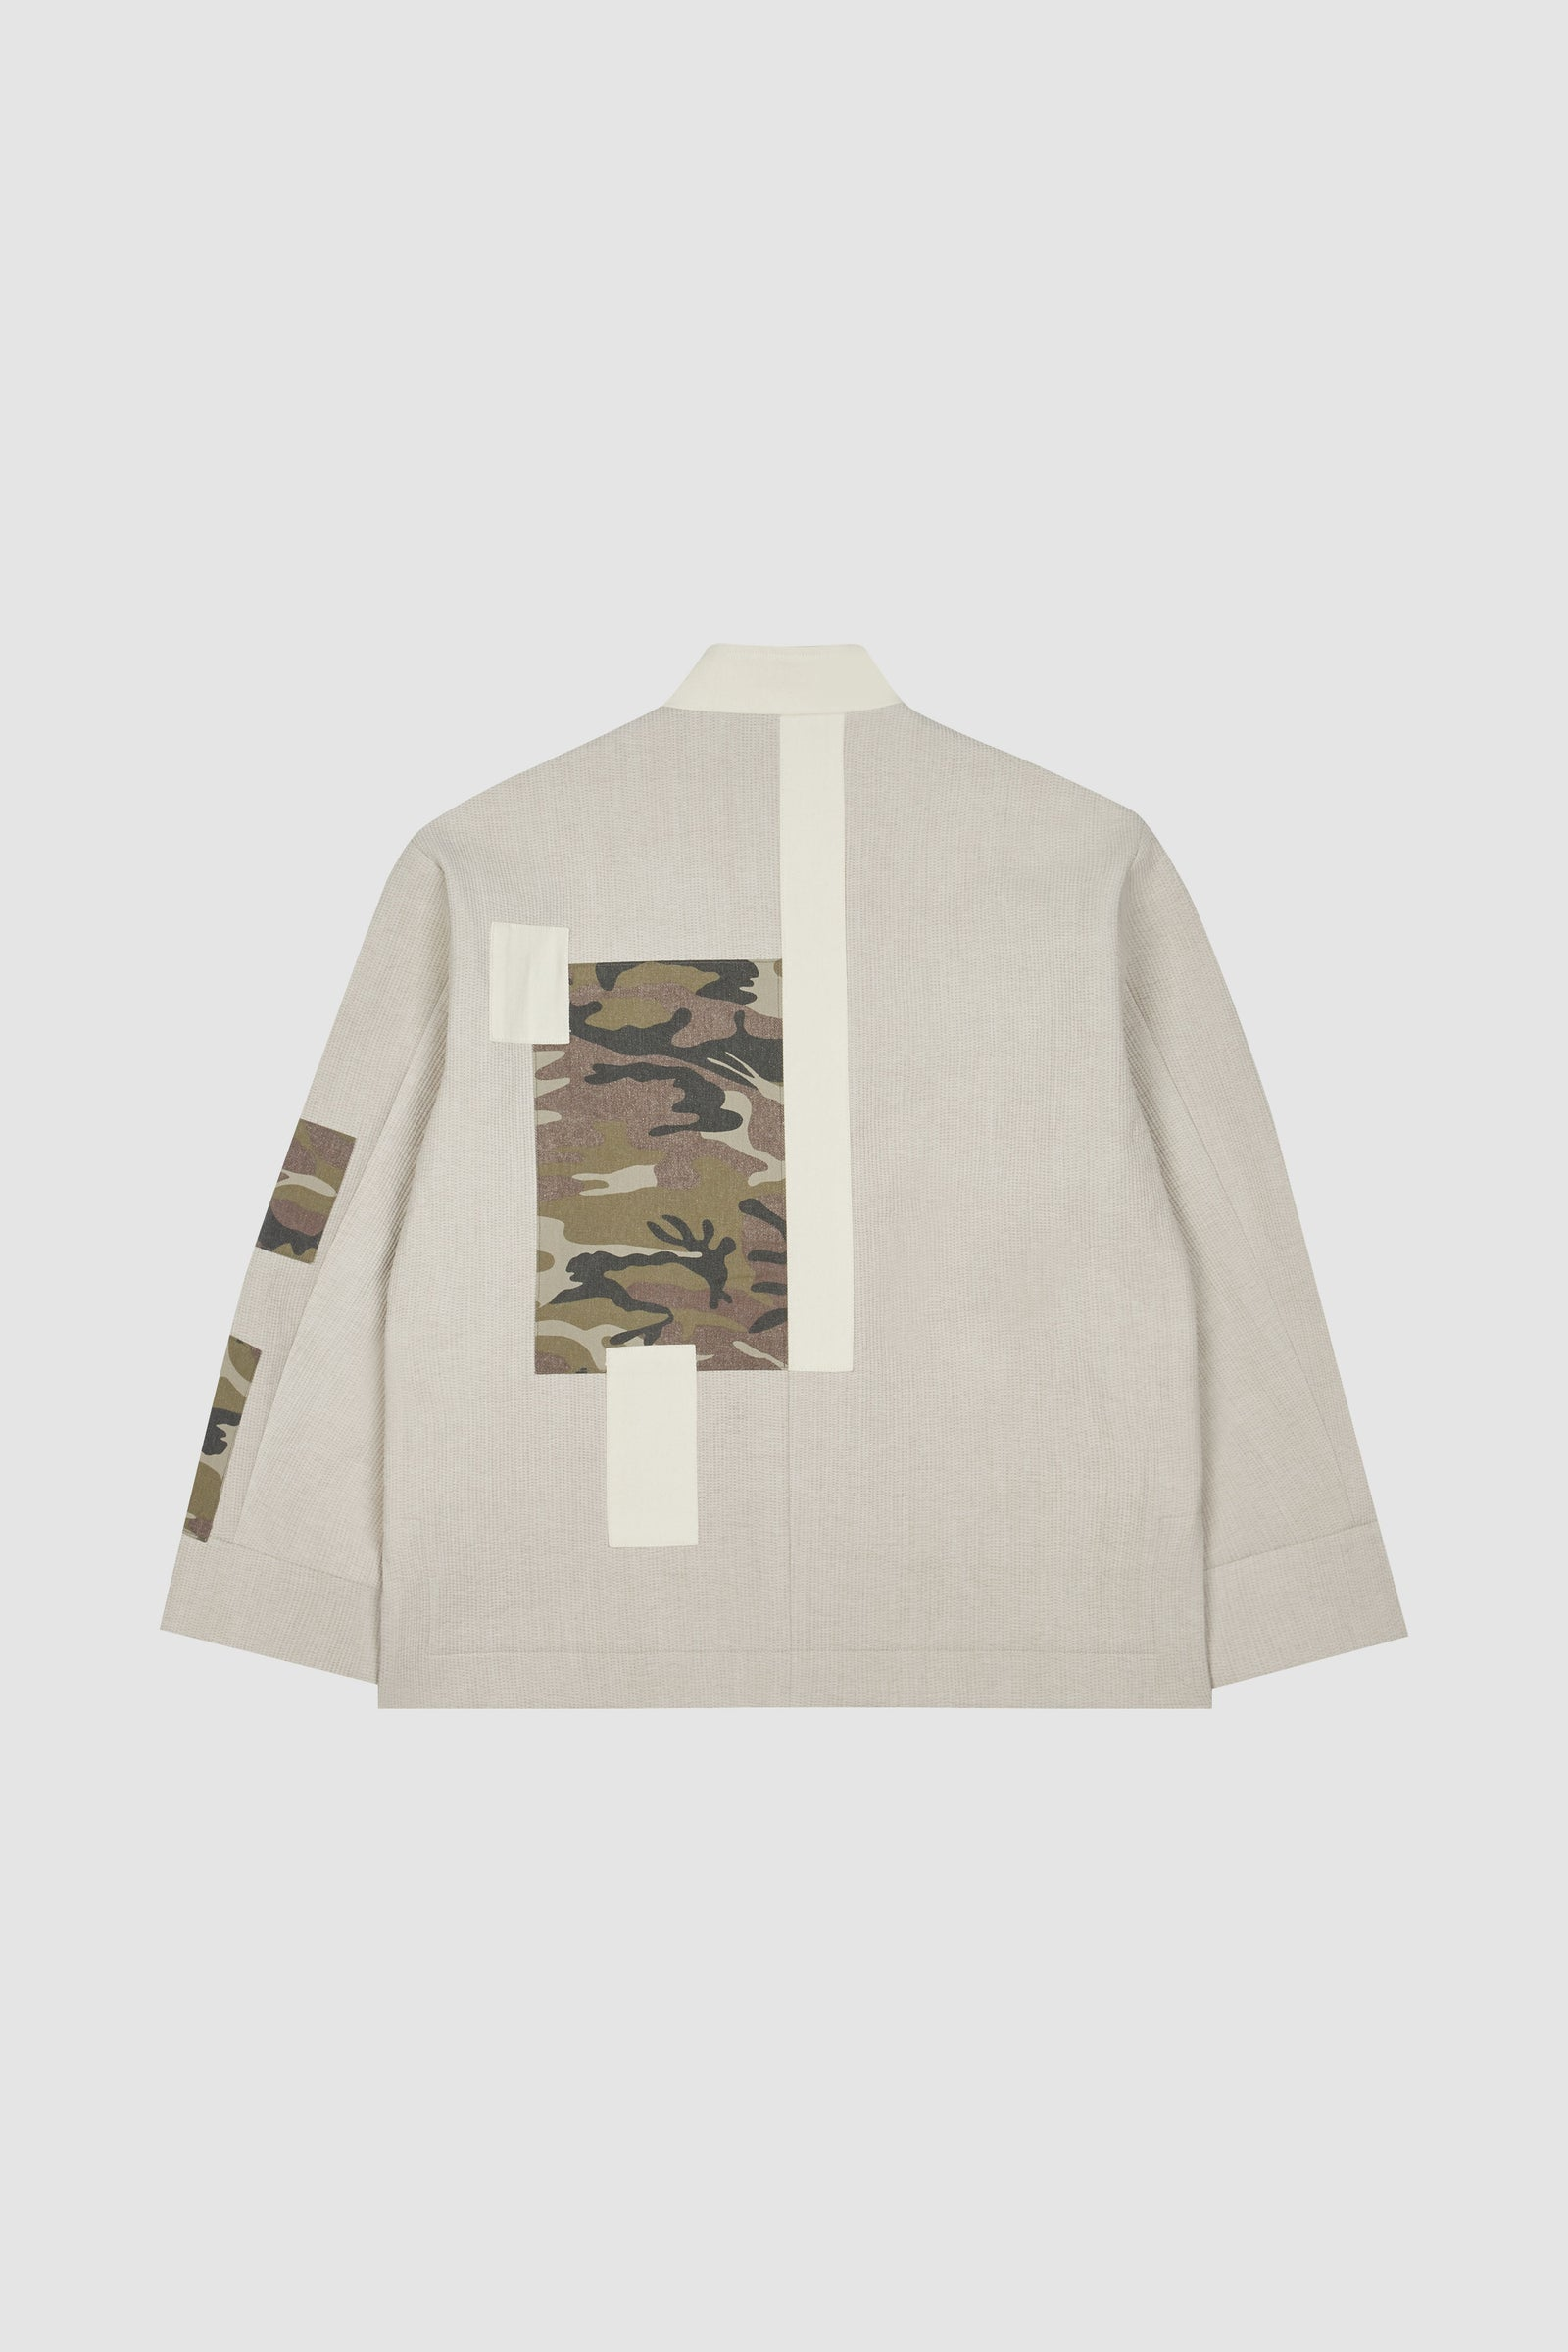 Photo of Ivory Patchwork Monk Jacket, number 3